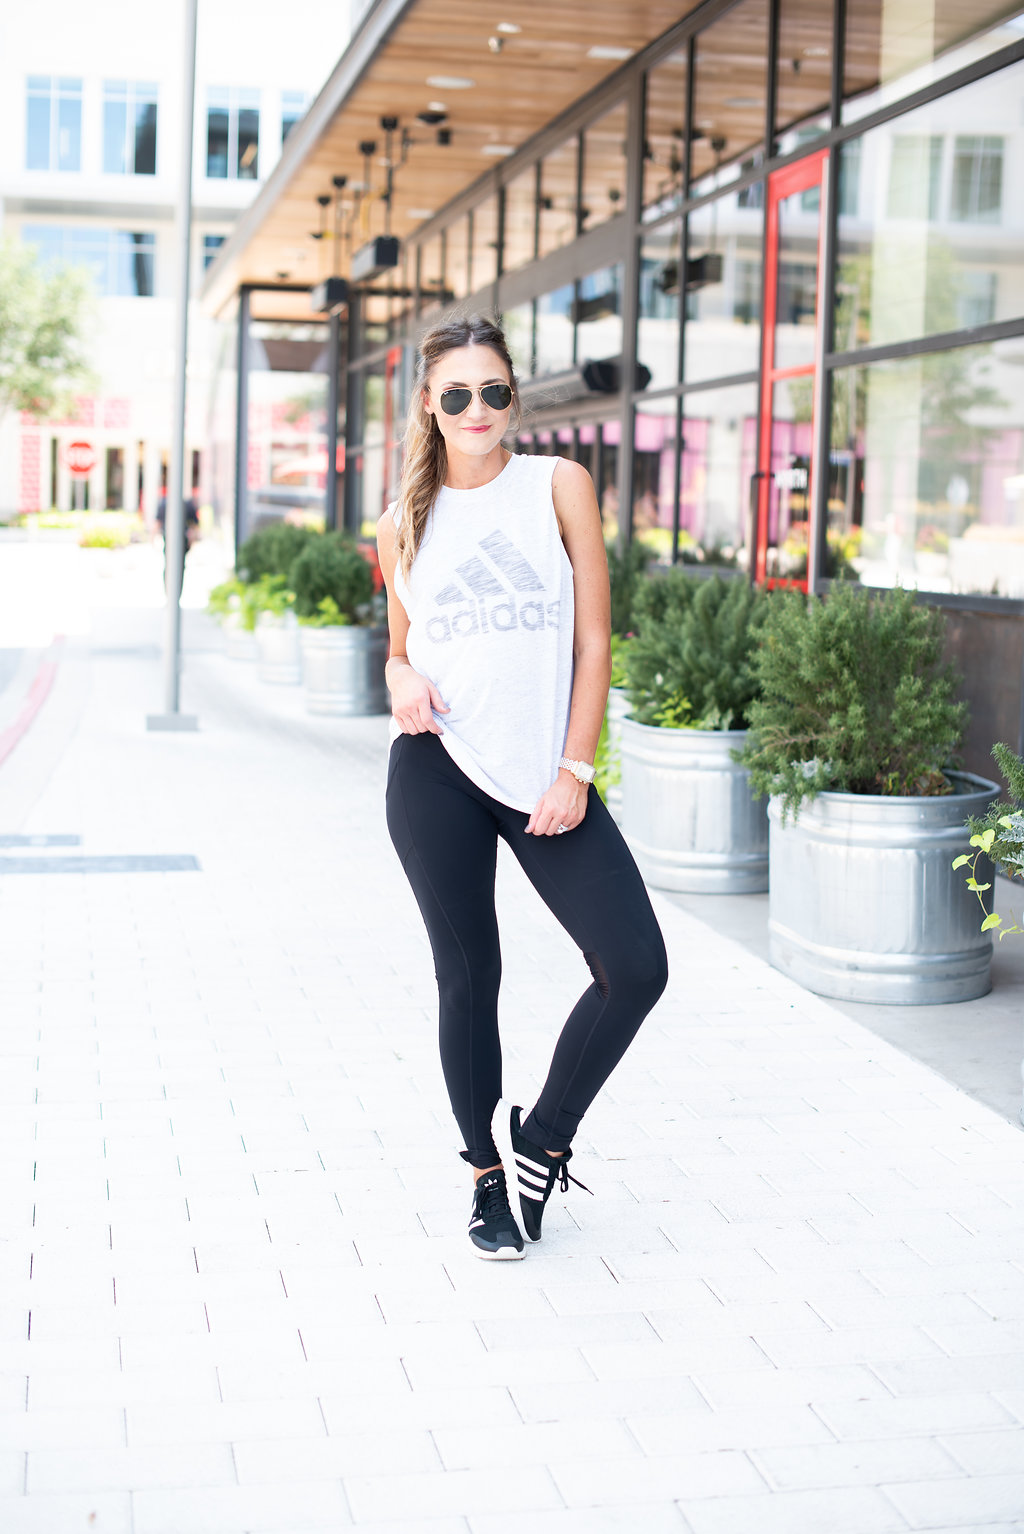 Adidas Workout Wear | how to wear Athleisure | Orange Theory Fitness | featured by popular Dallas life and style blogger Style Your Senses